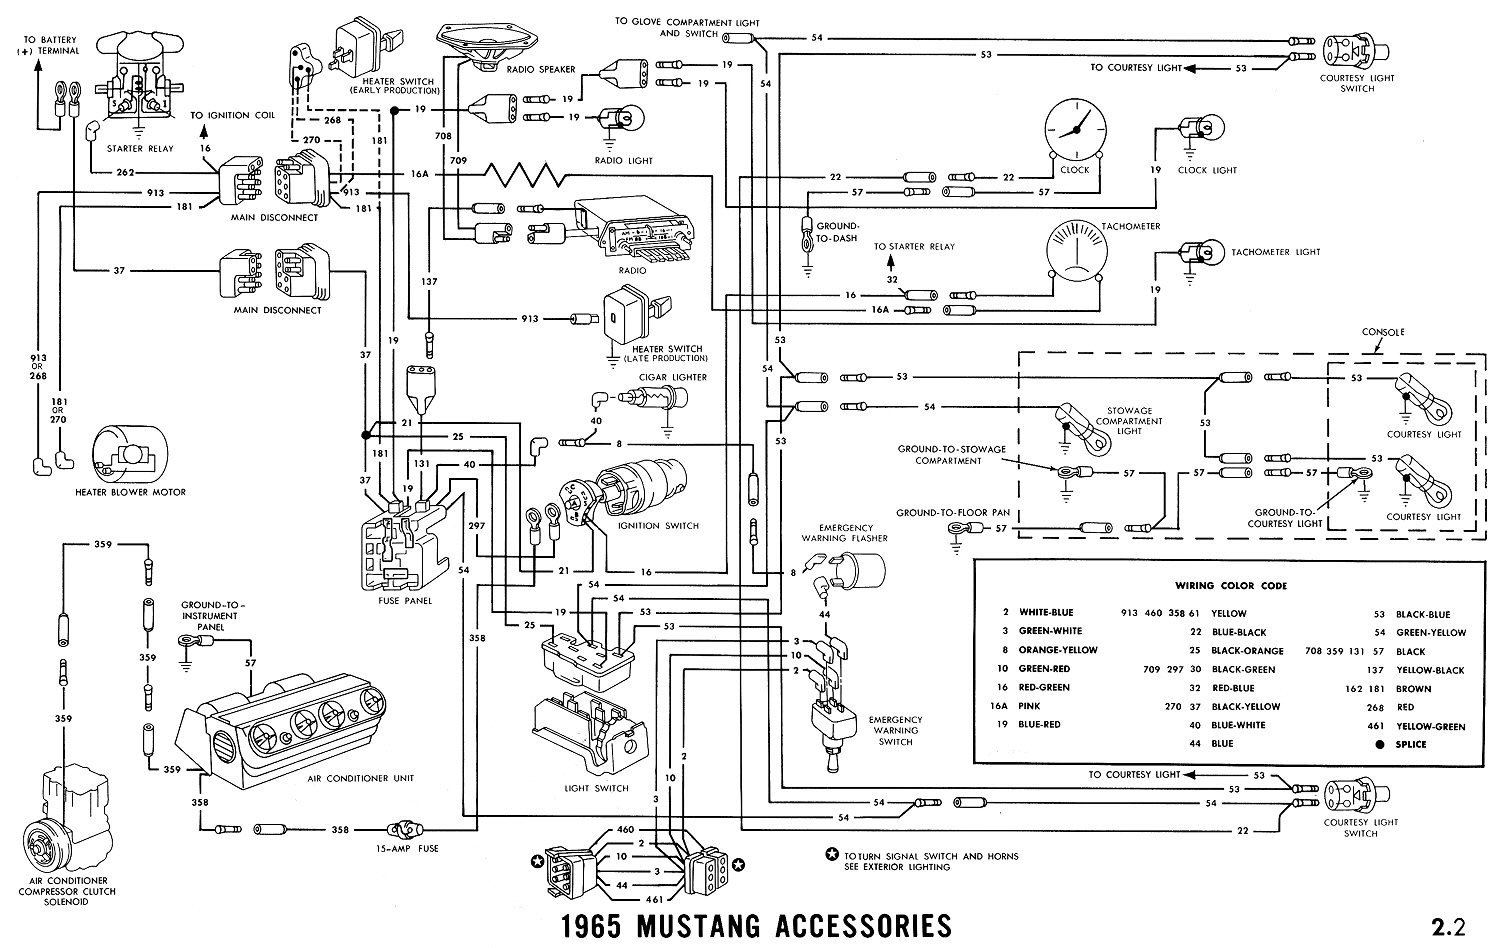 1965 mustang accessories pictorial or schematic  air conditioner